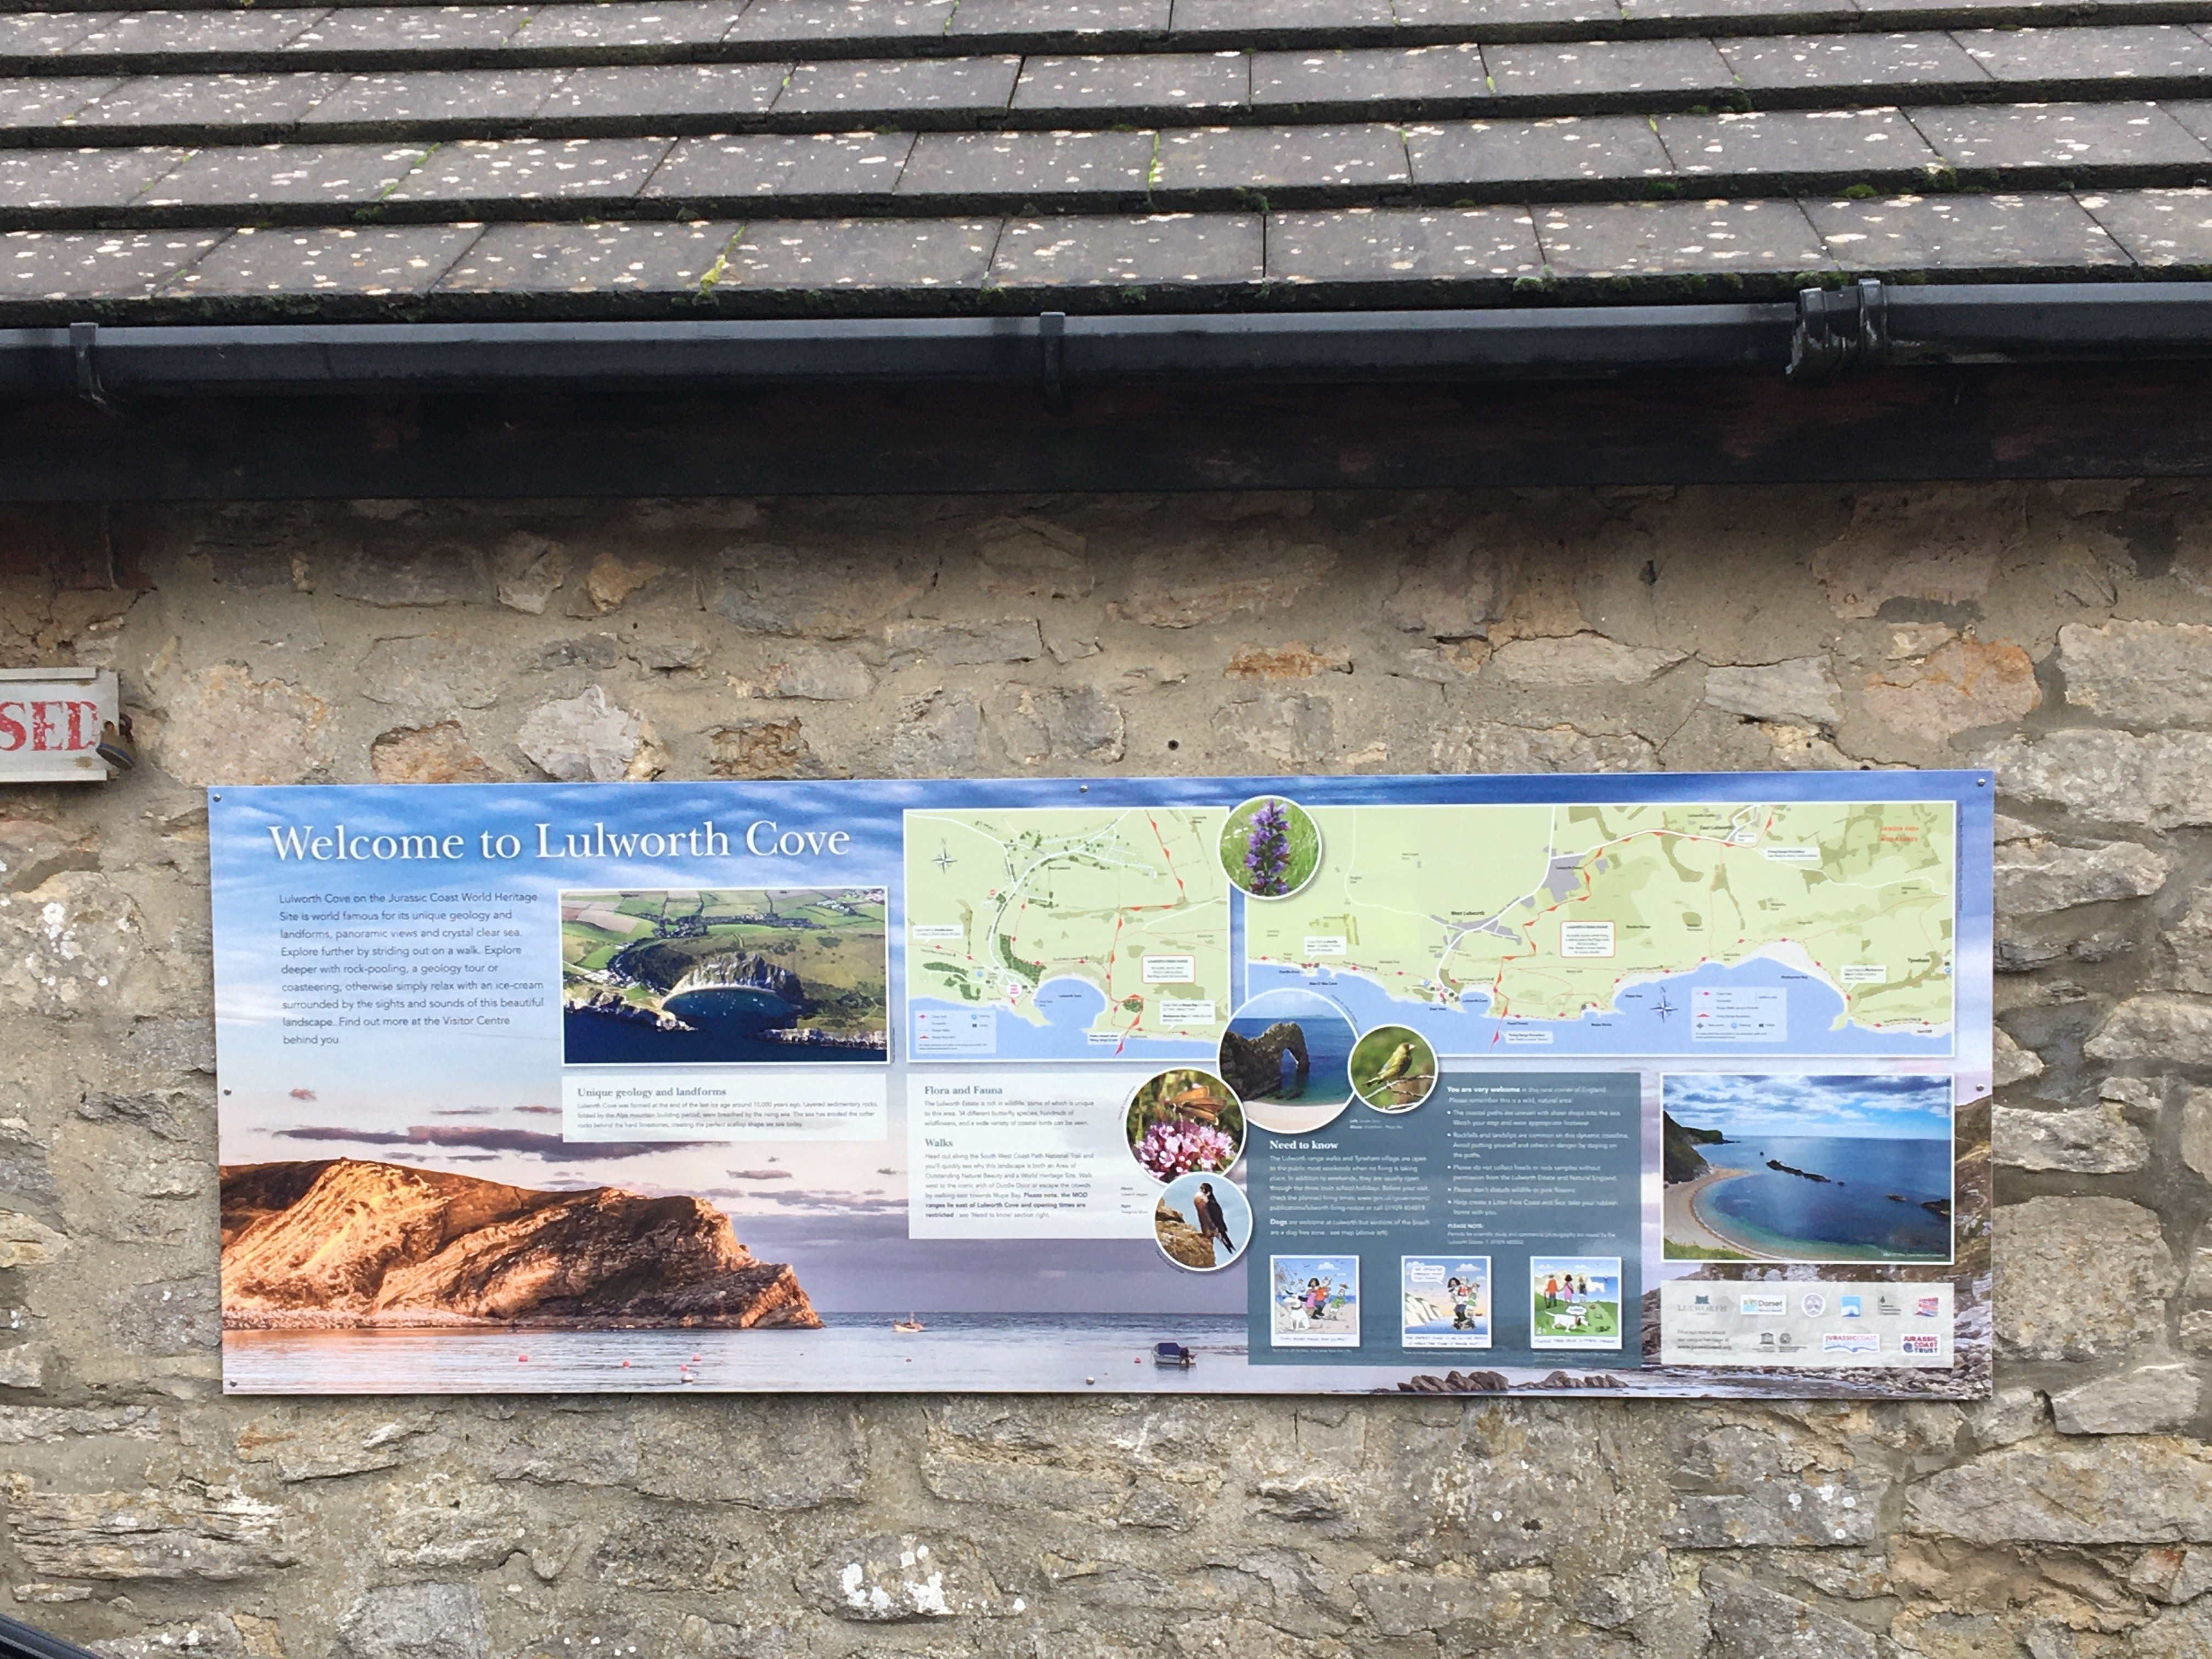 Interpretation panel, Lulworth Cove Visitor Centre